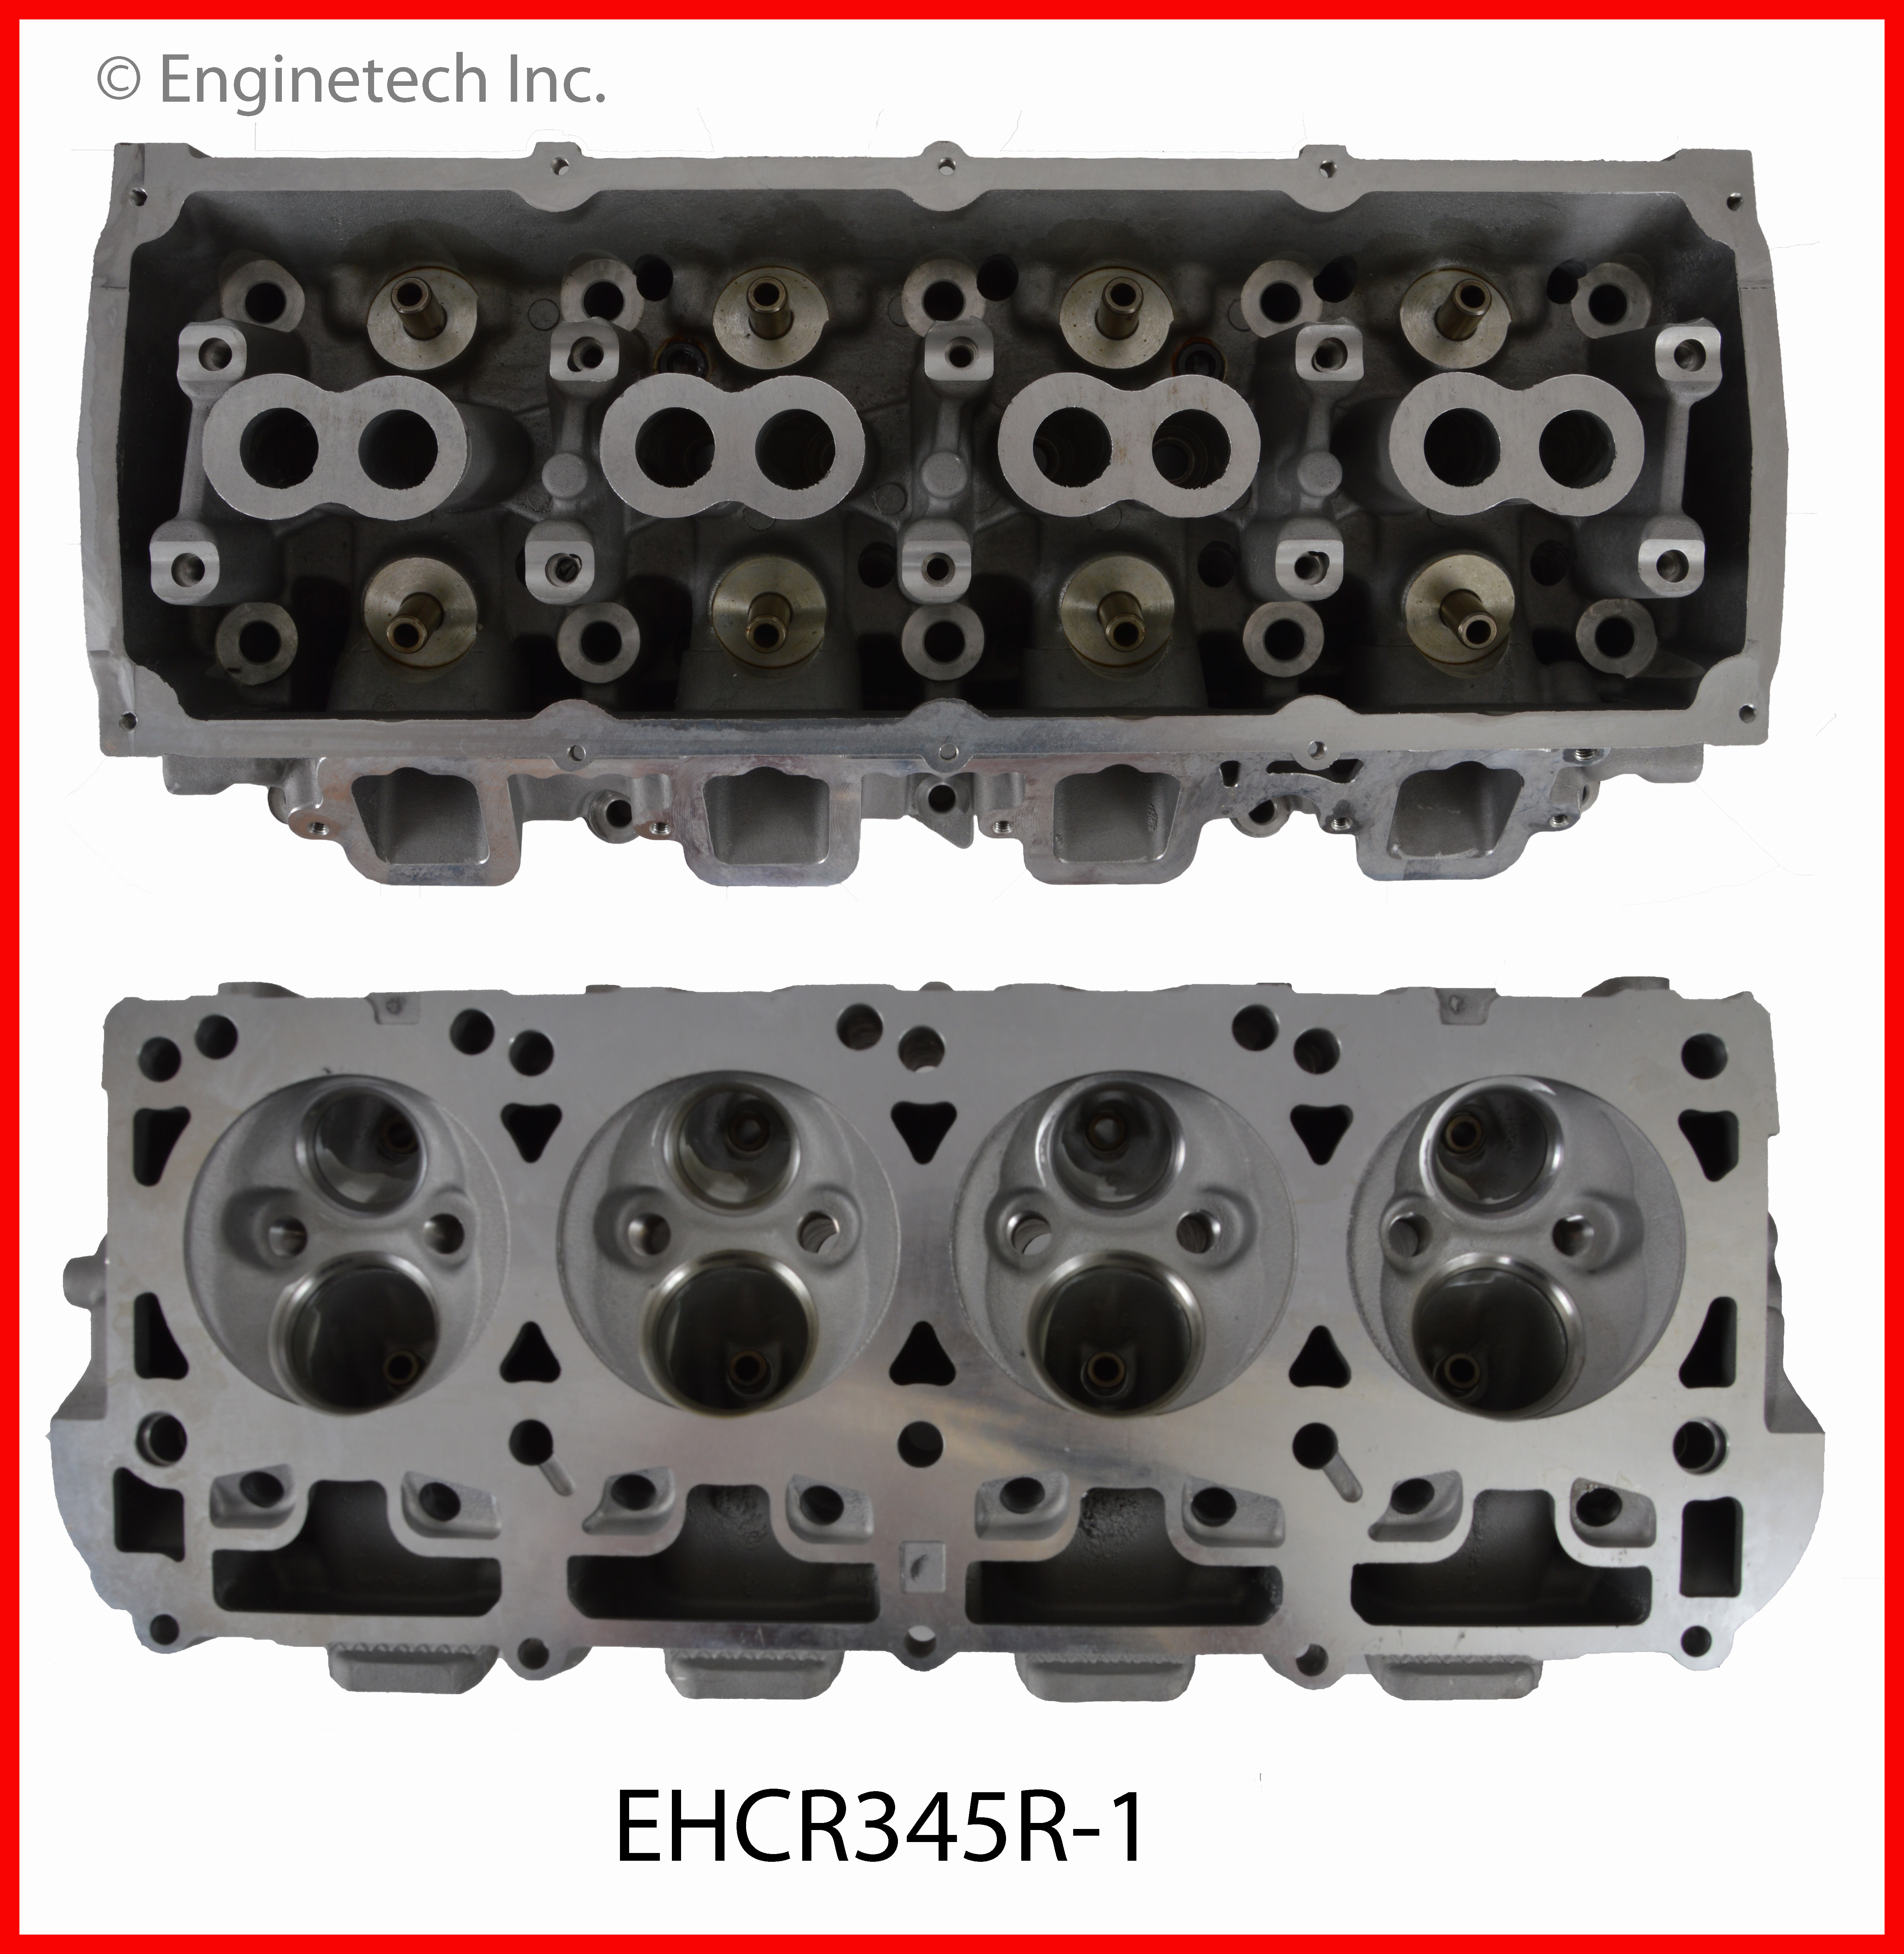 EHCR345R-1 Cylinder Head - Bare Enginetech